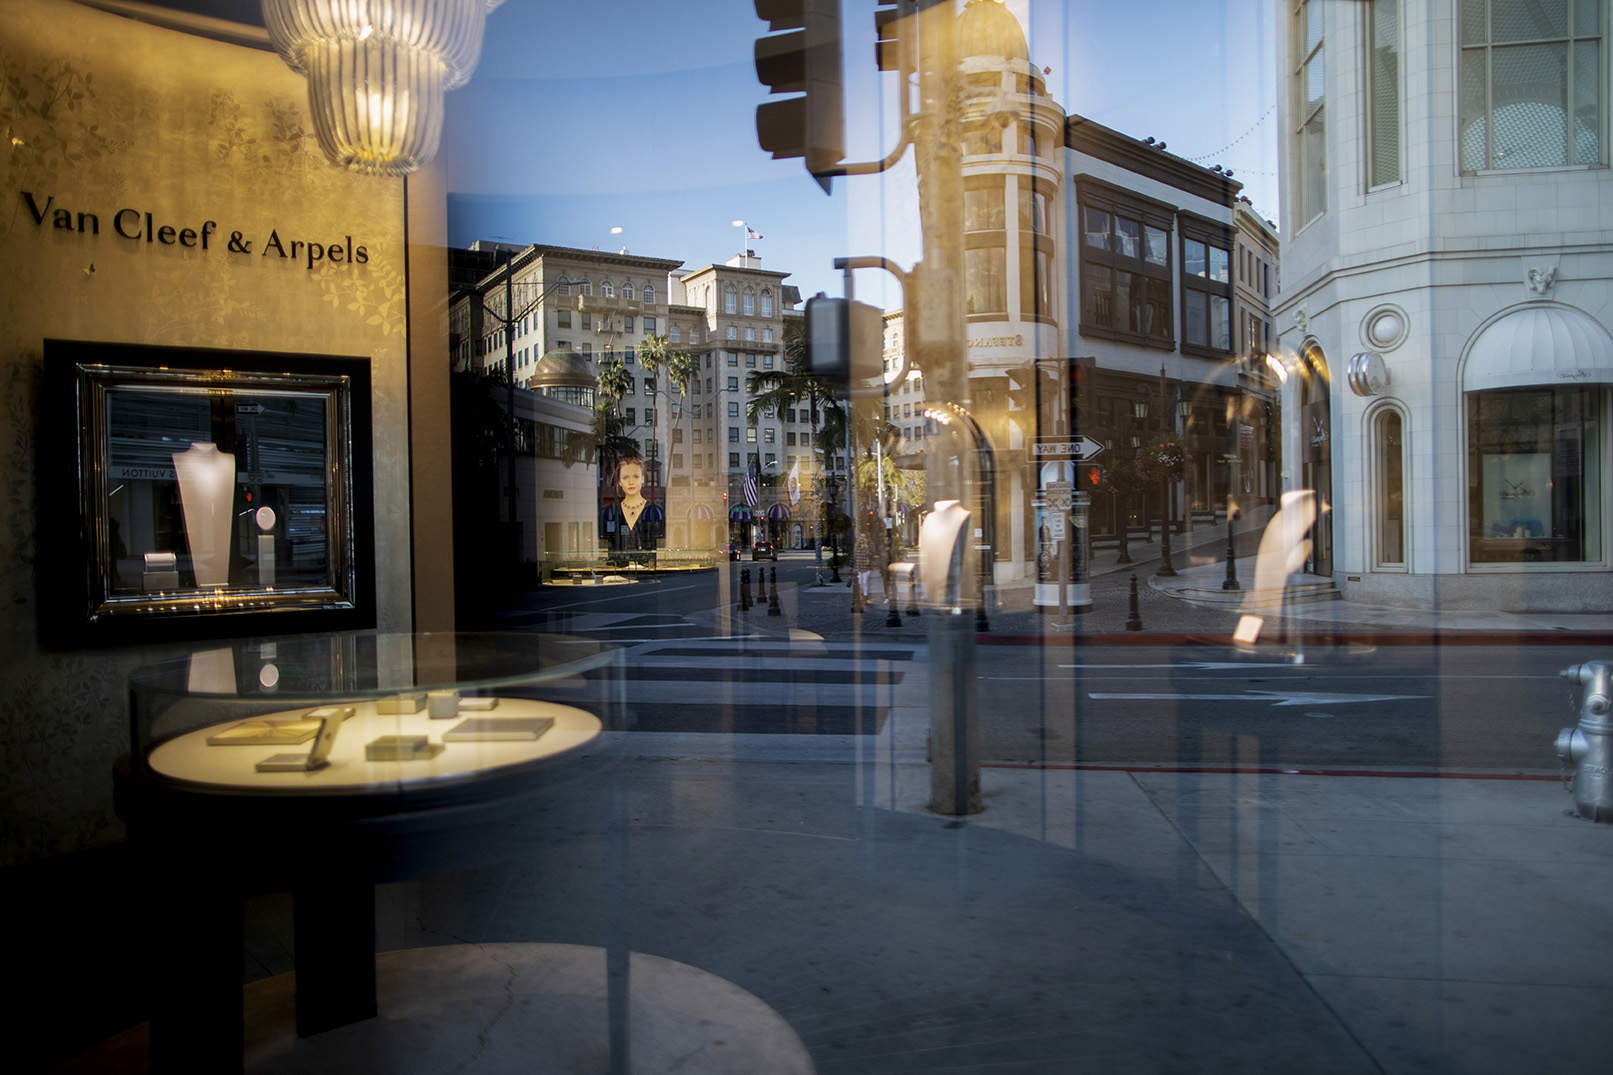 An almost empty Rodeo Drive is reflected on the closed Van Cleef & Arpels window store, in Beverly Hills on March 27, 2020. Governor Gavin Newsom issues a {quote}stay at Home{quote} order on March 19, to slow the spread of Covid-19, closing all the non-essential businesses which include luxury stores.